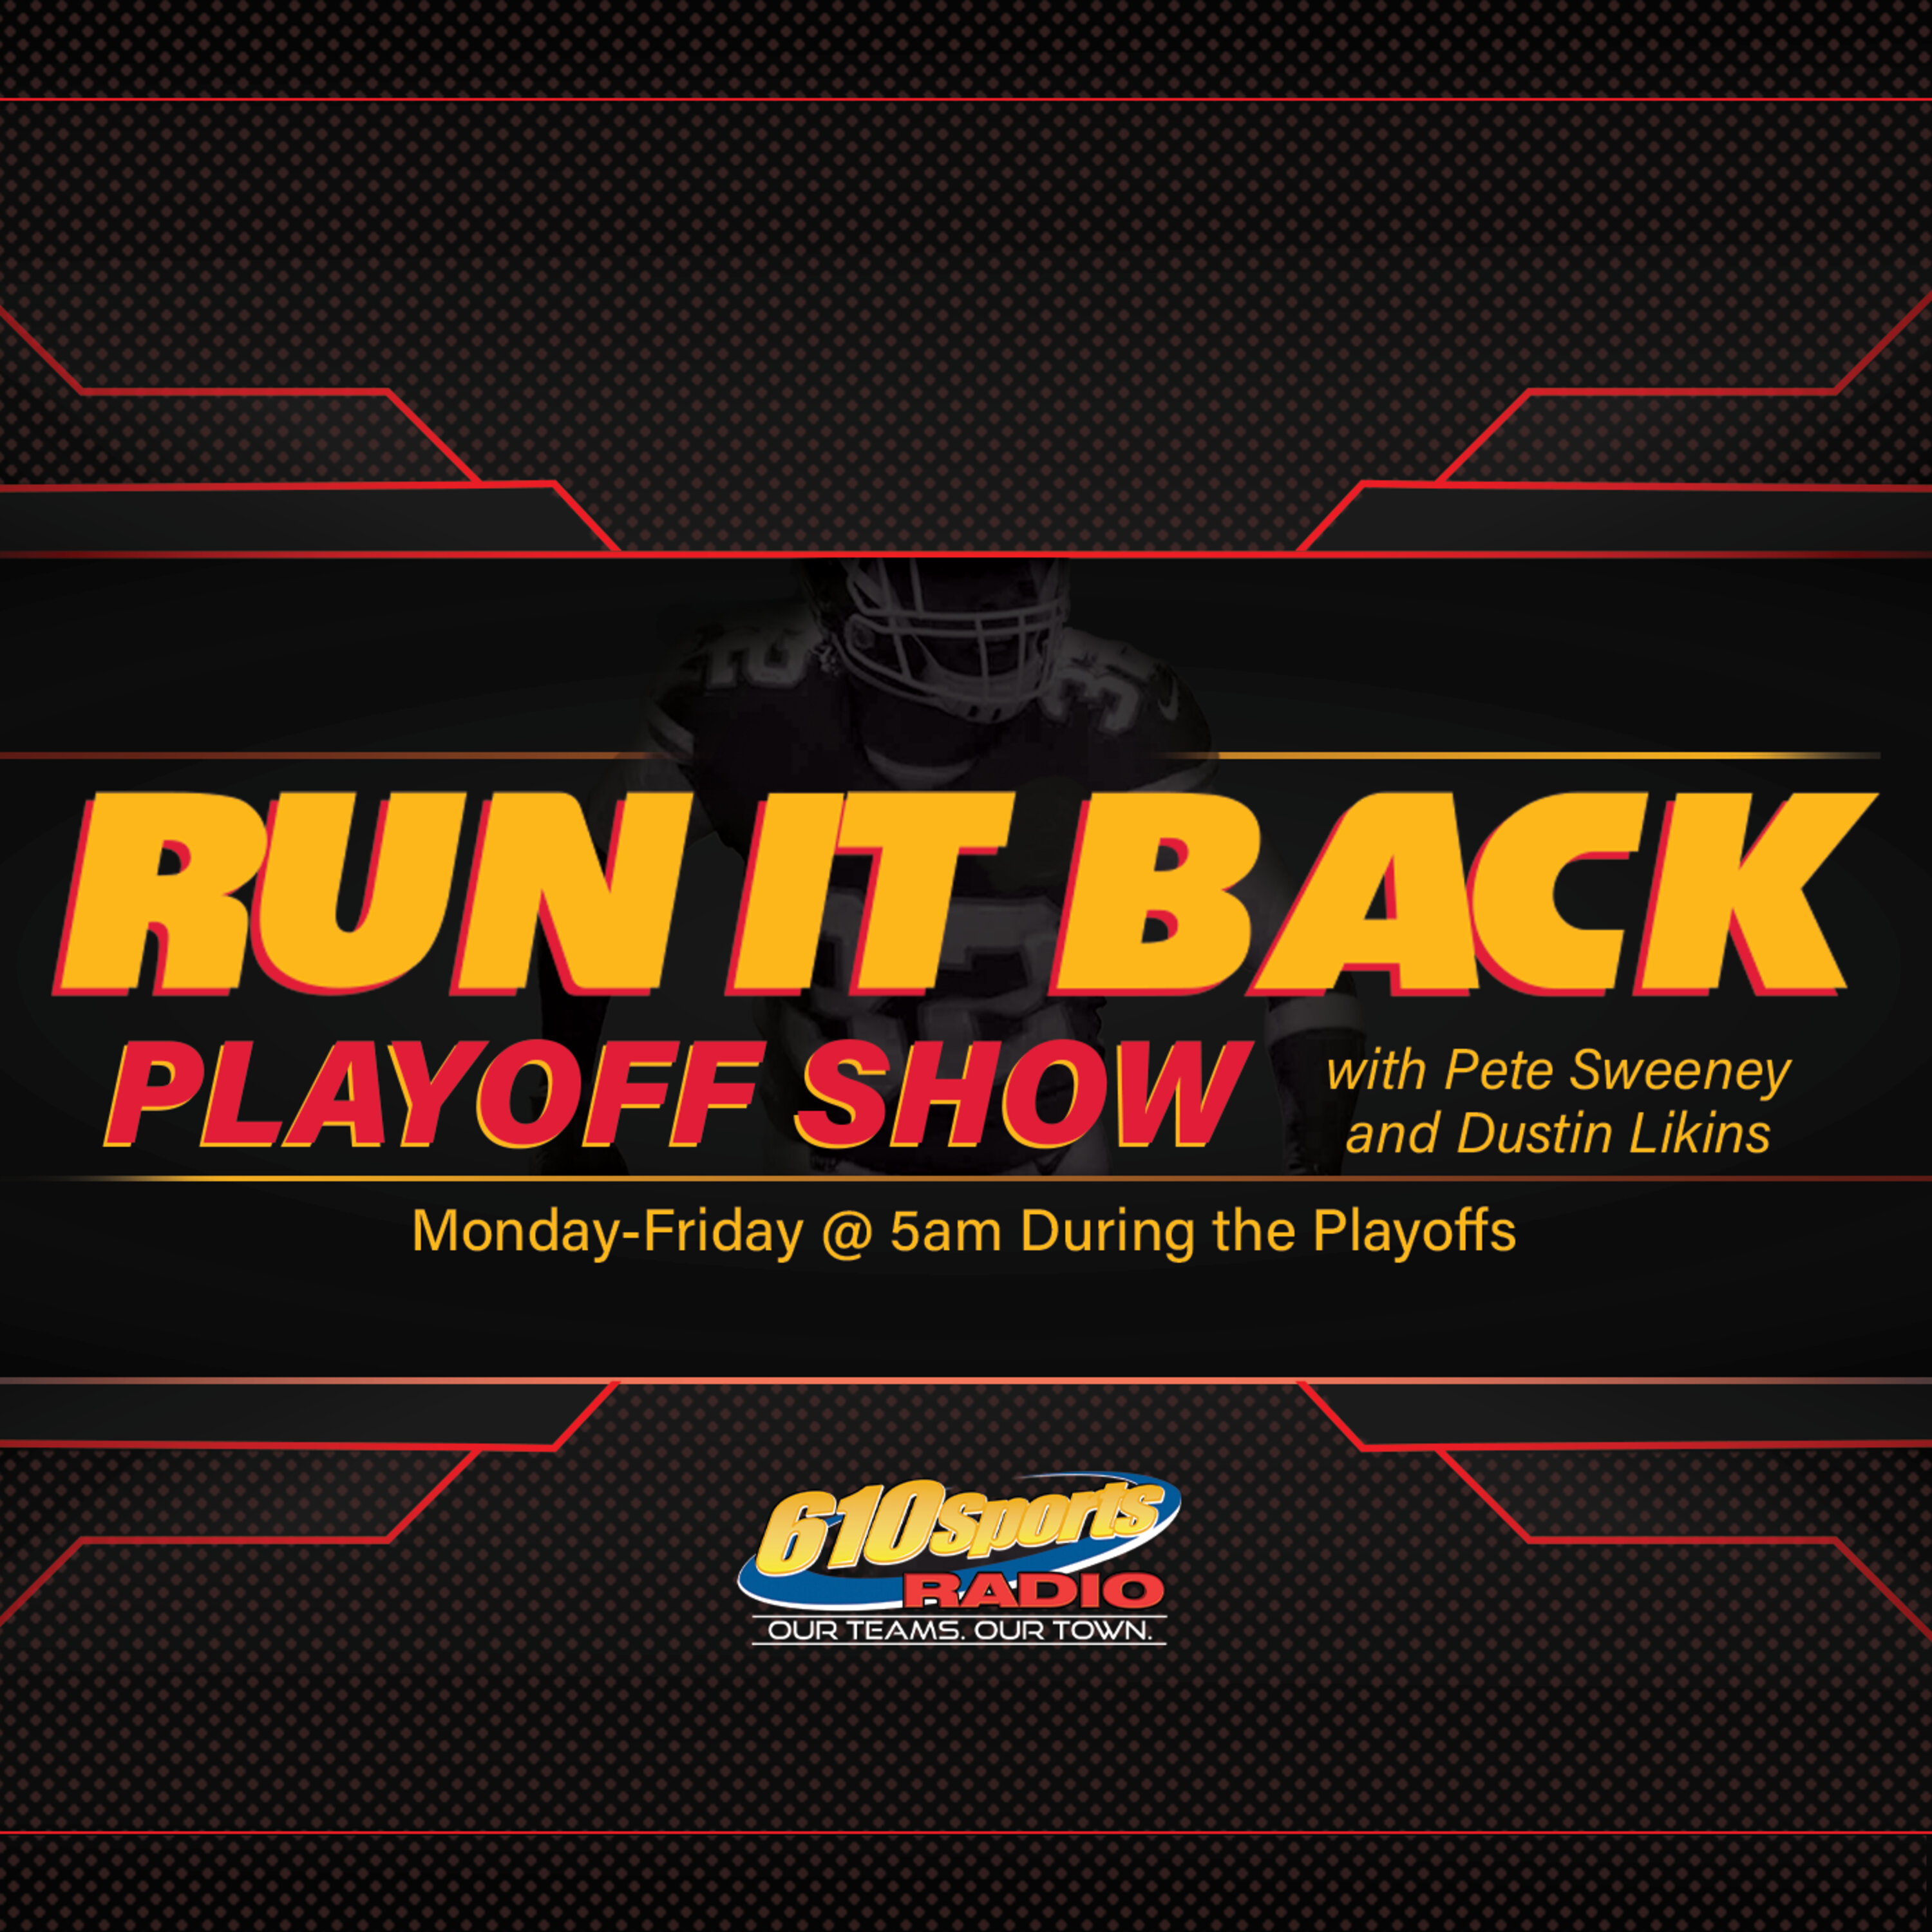 The Run It Back Playoff Show